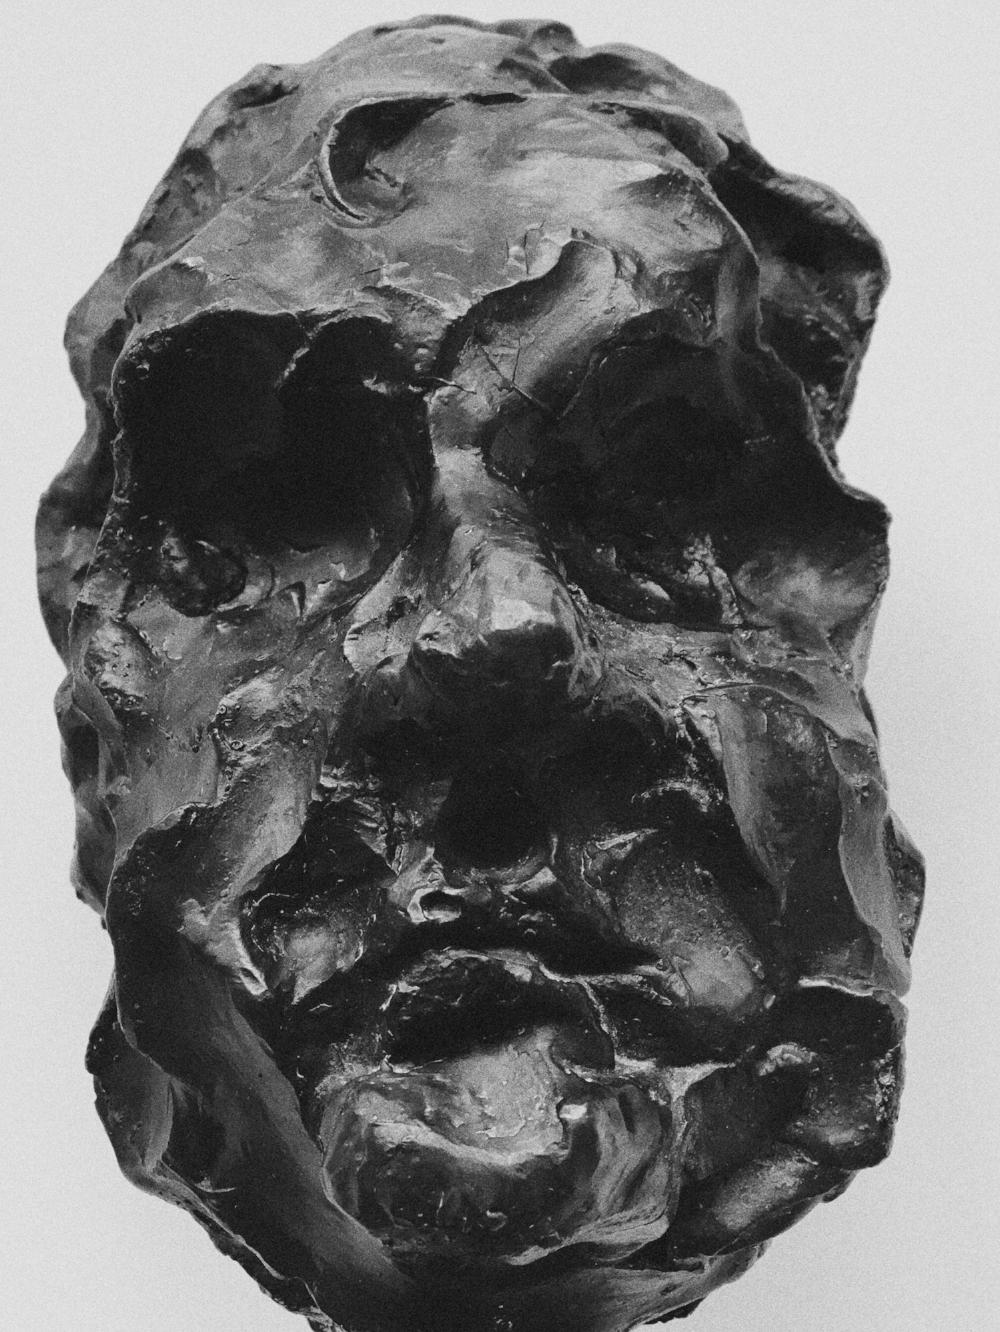 Head IV 2015 bronze